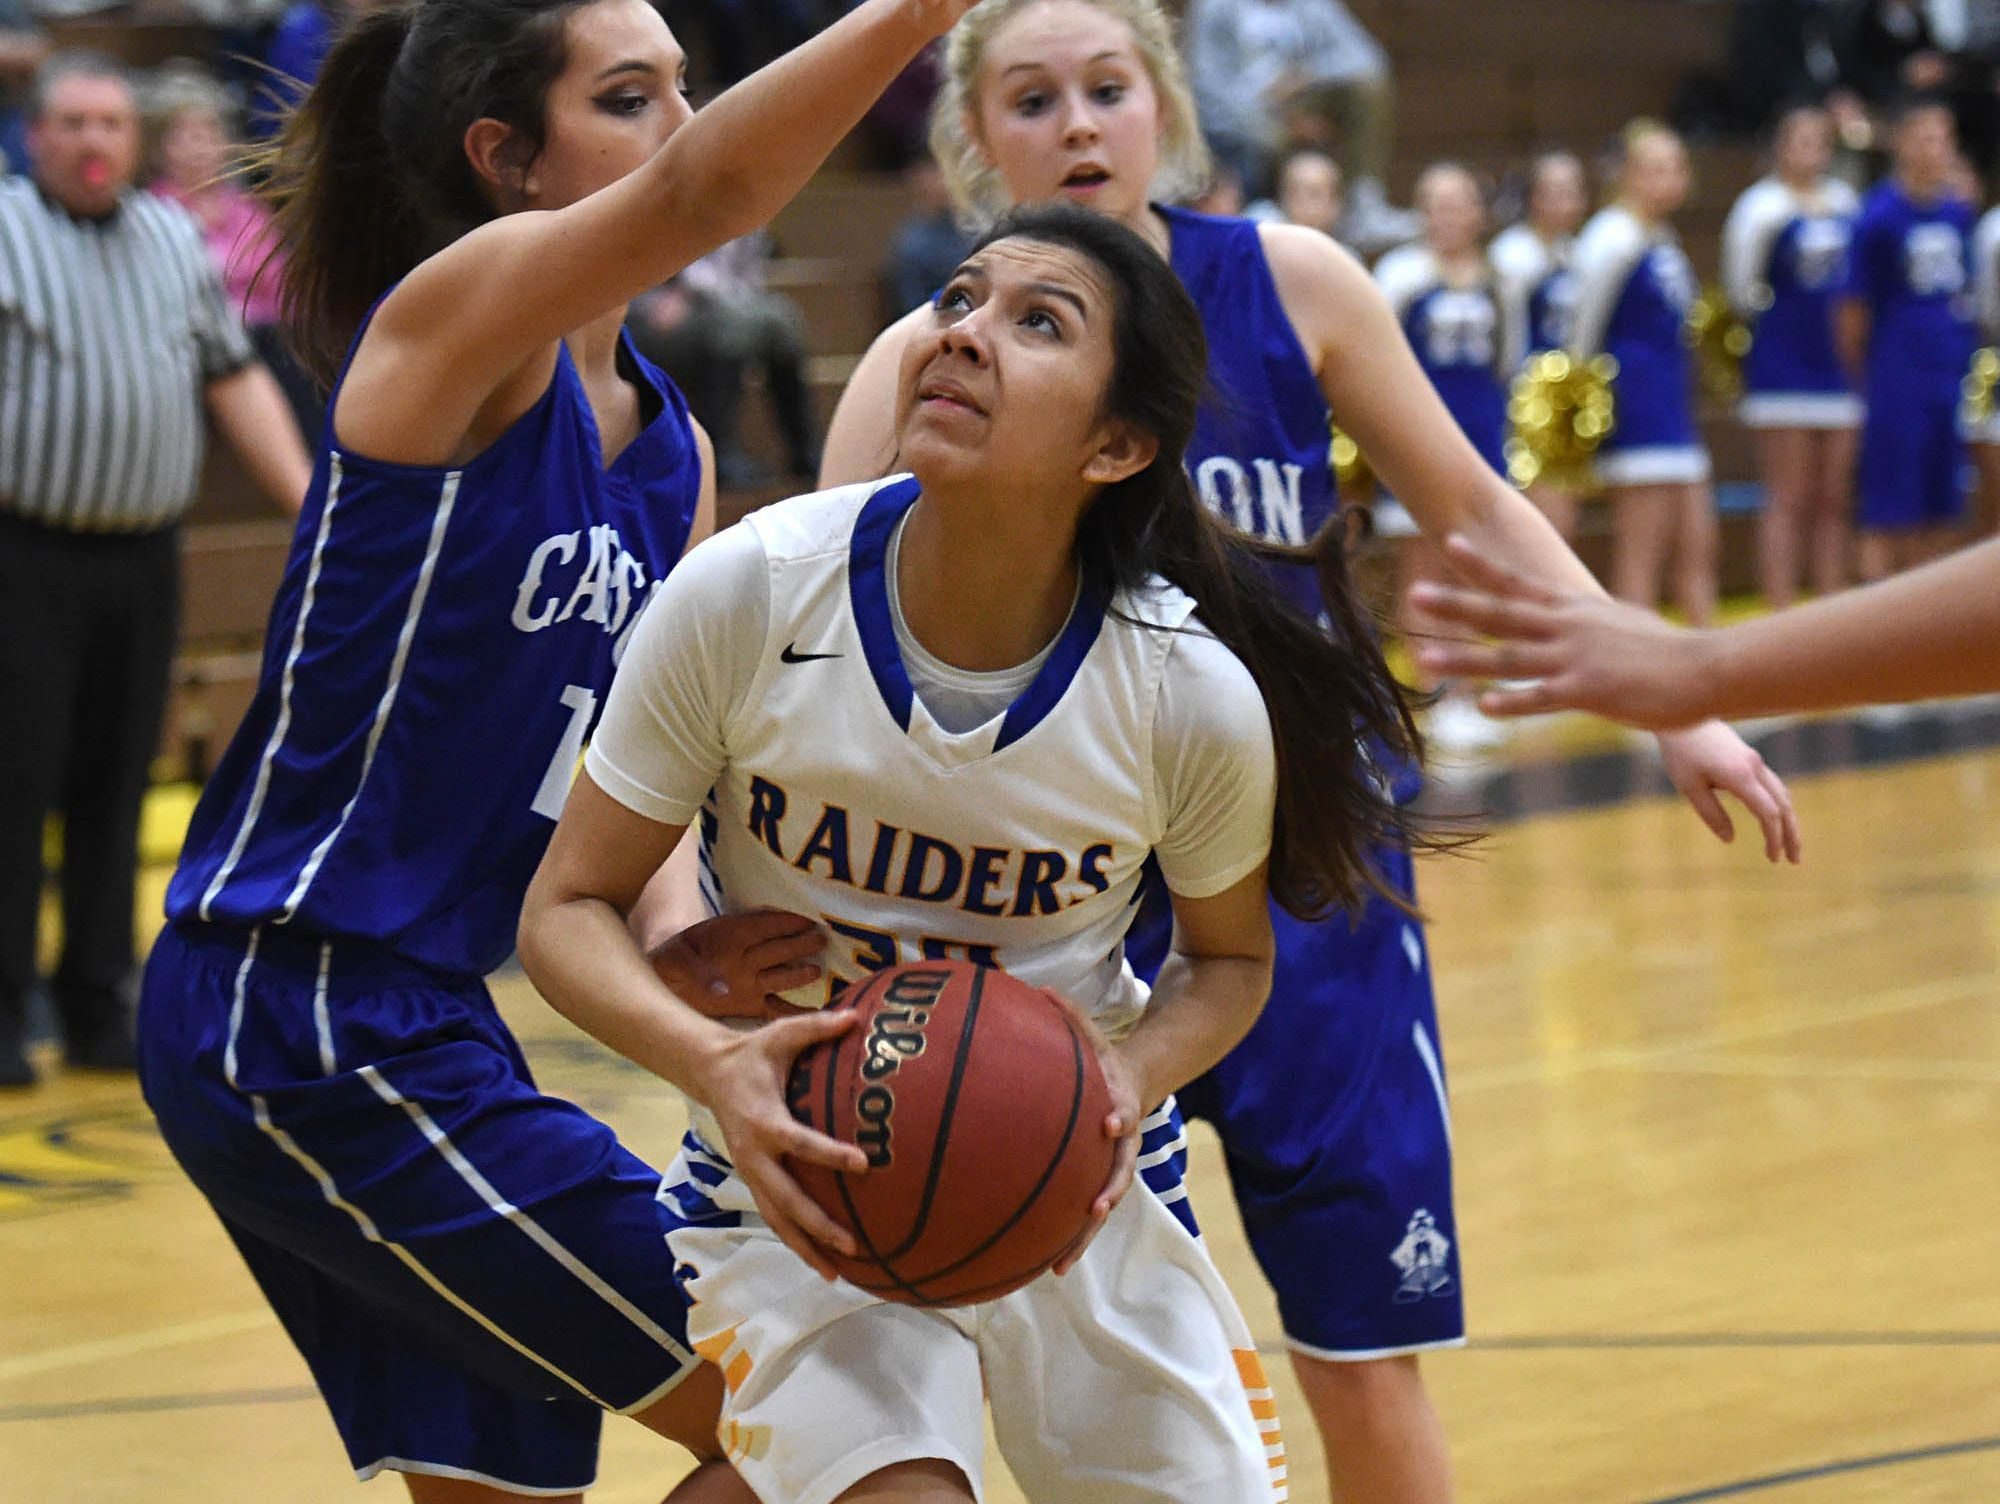 Reed's Larsa Guzman looks to shoot with Carson's Dajarrah Navarro covering her in the first half of Wednesday's playoff game at Reed.